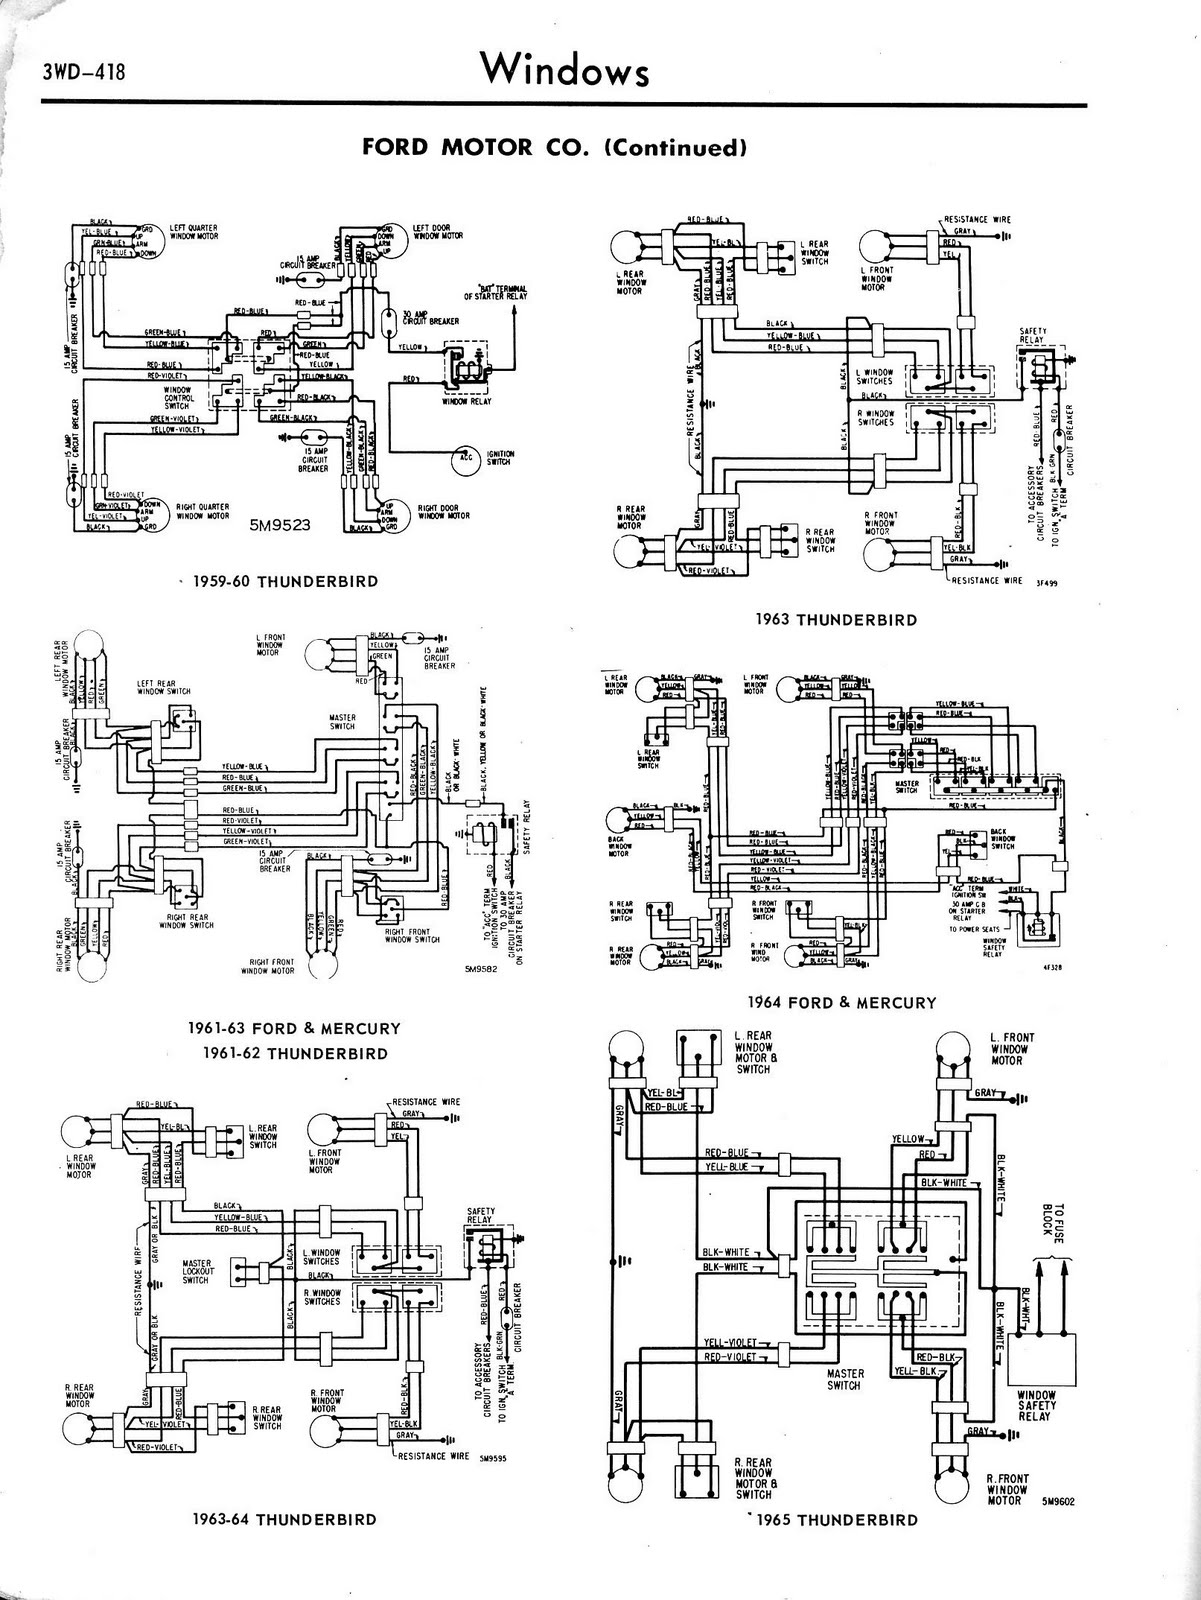 1965+Ford+Thunderbird+Window+Controls+Diagram 1964 thunderbird wiring diagram 1964 thunderbird stereo wiring 65 ford f100 wiring diagram at webbmarketing.co